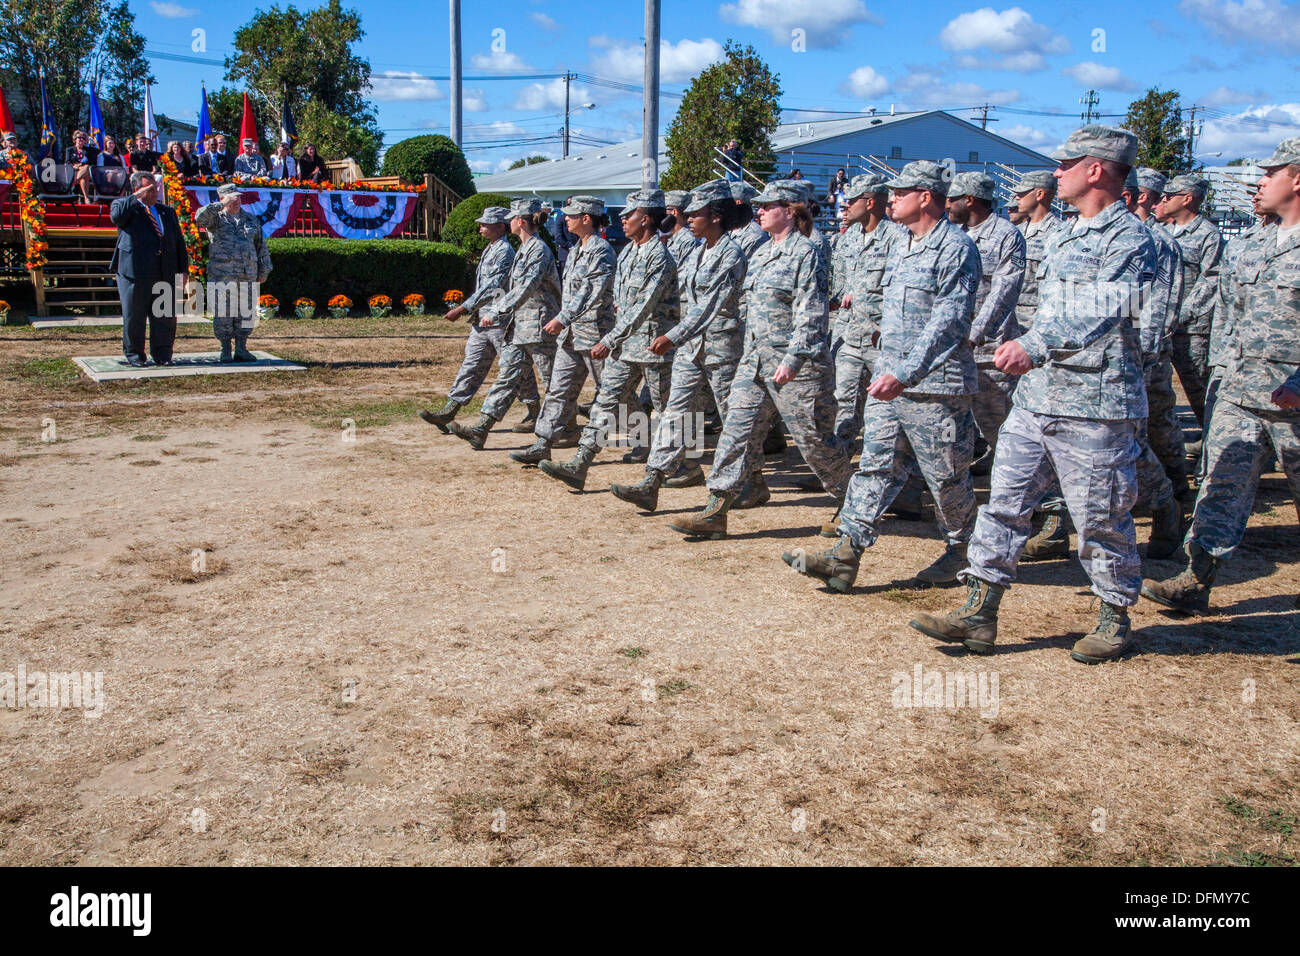 Members of the 108th Wing march past Gov. Chris Christie and Brig. Gen. Michael L. Cunniff, the Adjutant General of New Jersey, - Stock Image